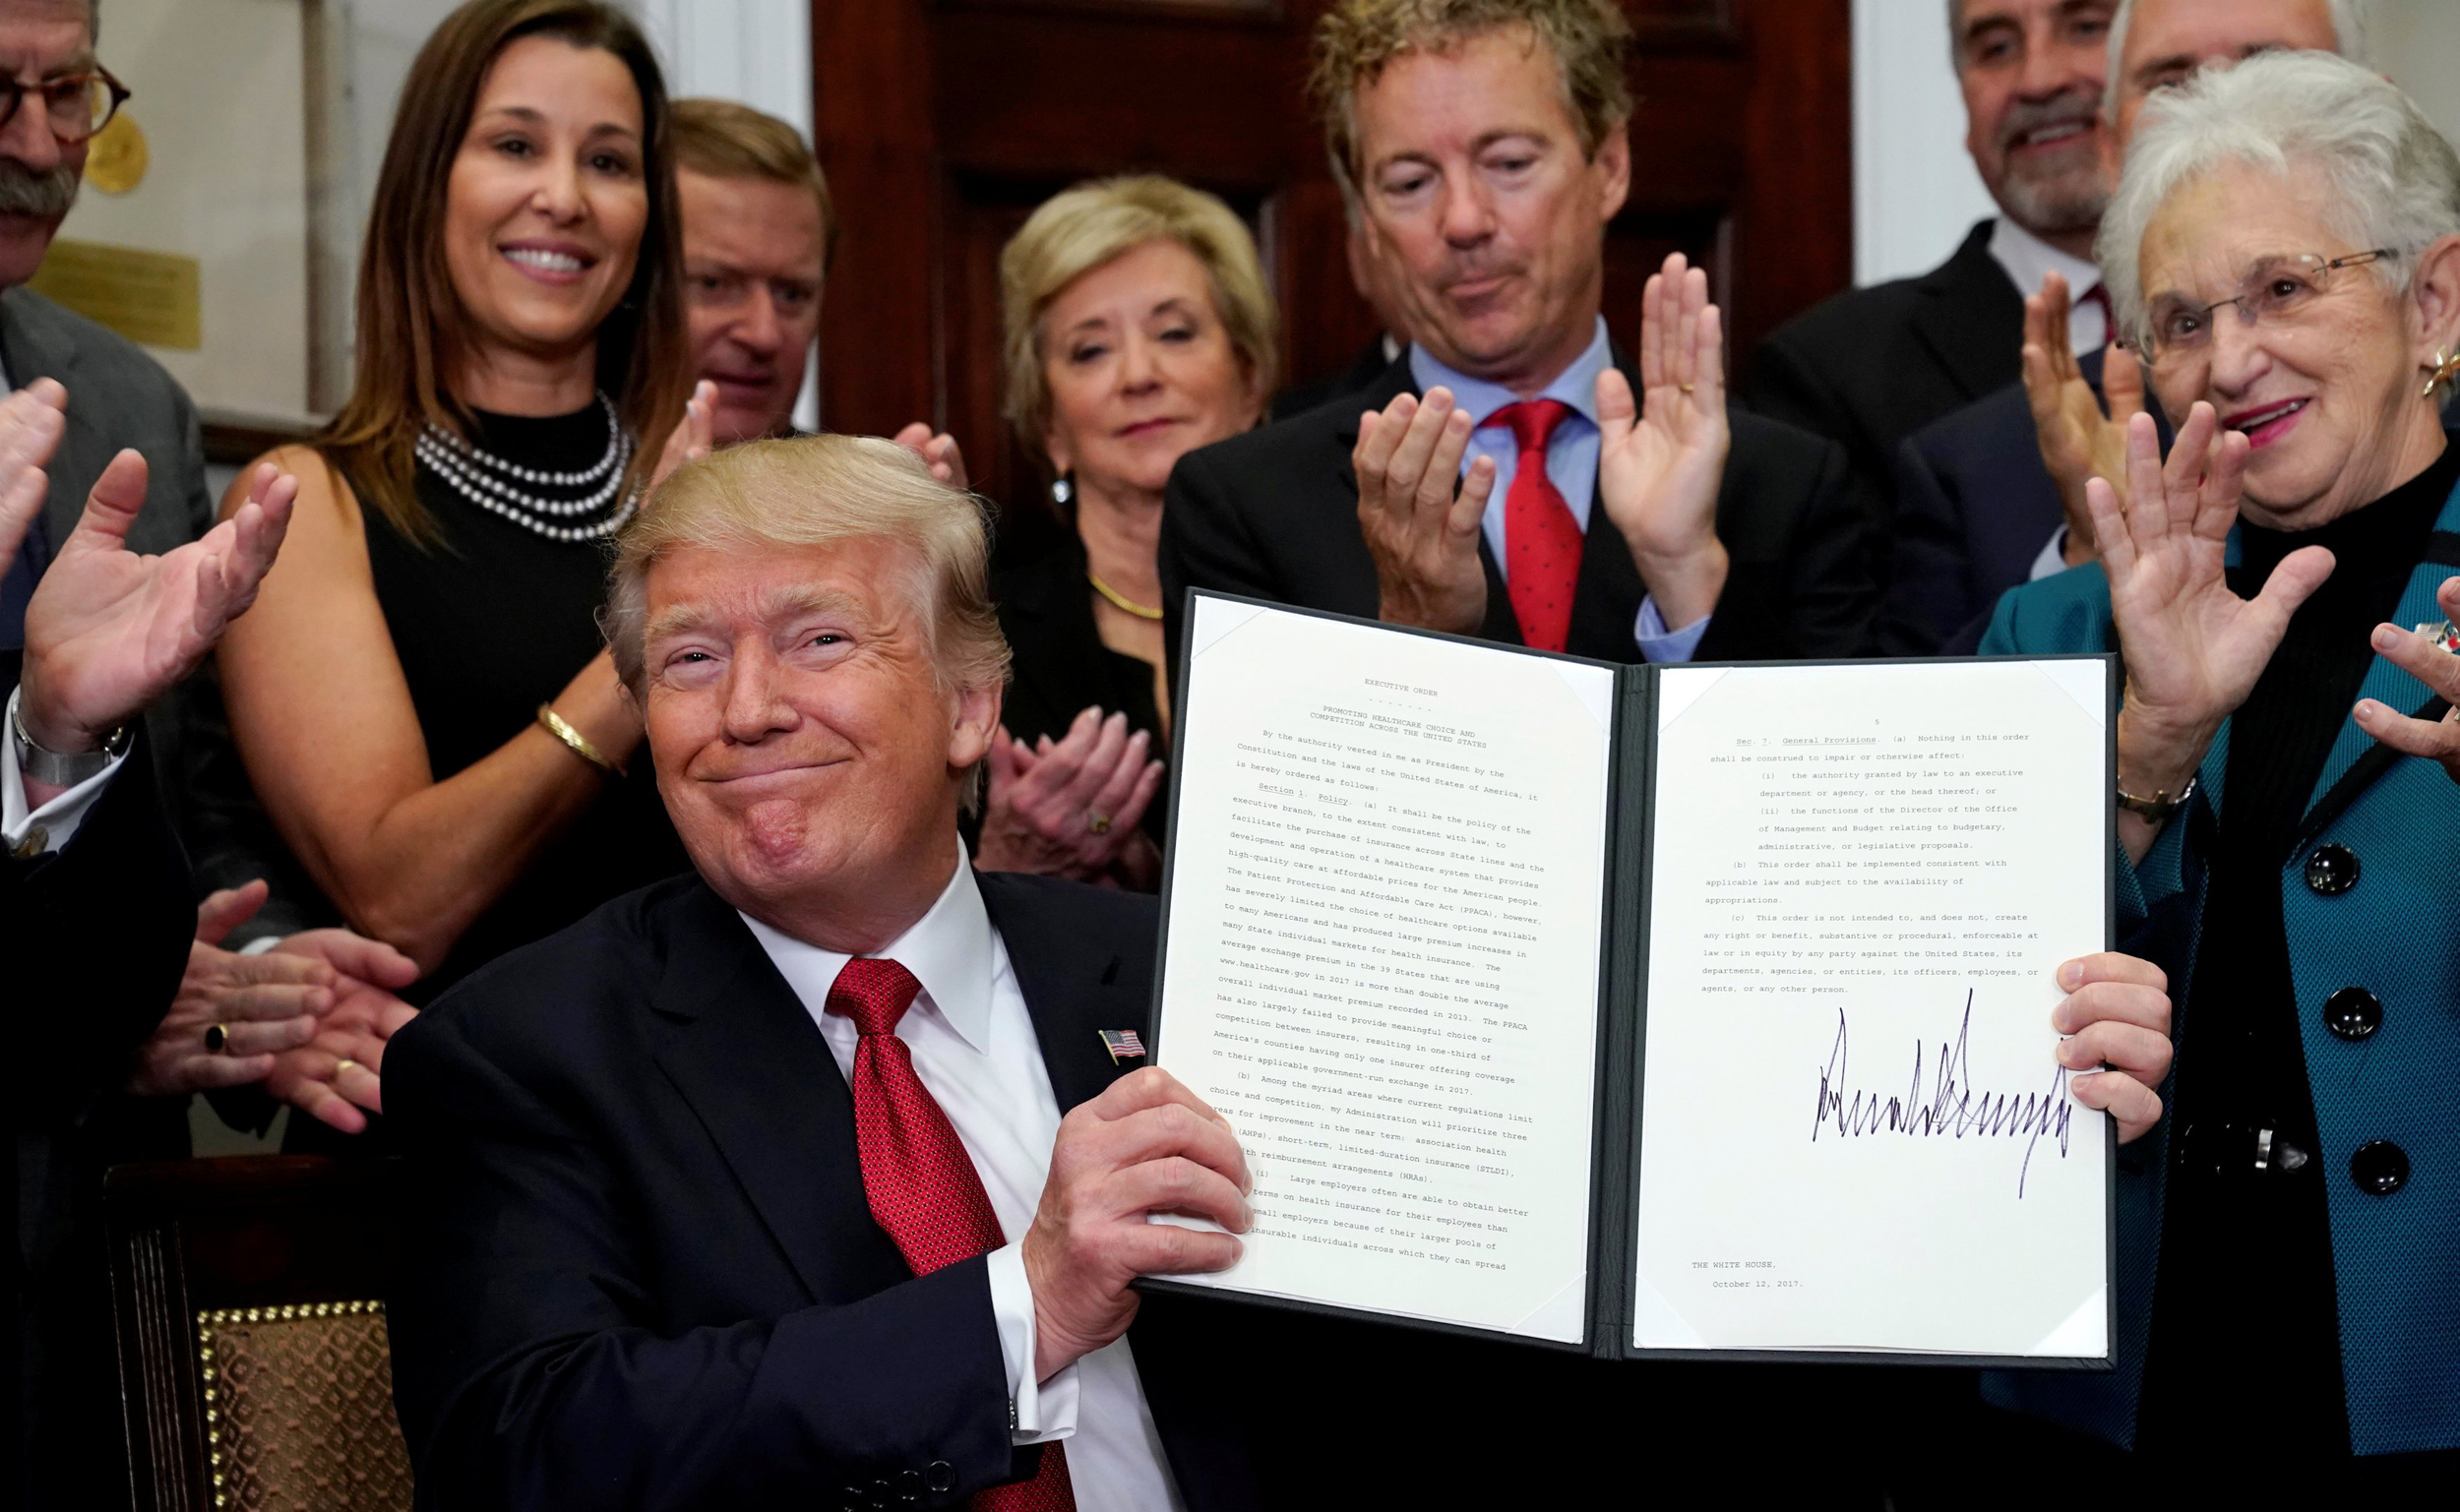 Image: Trump signs an Executive Order on healthcare at the White House in Washington